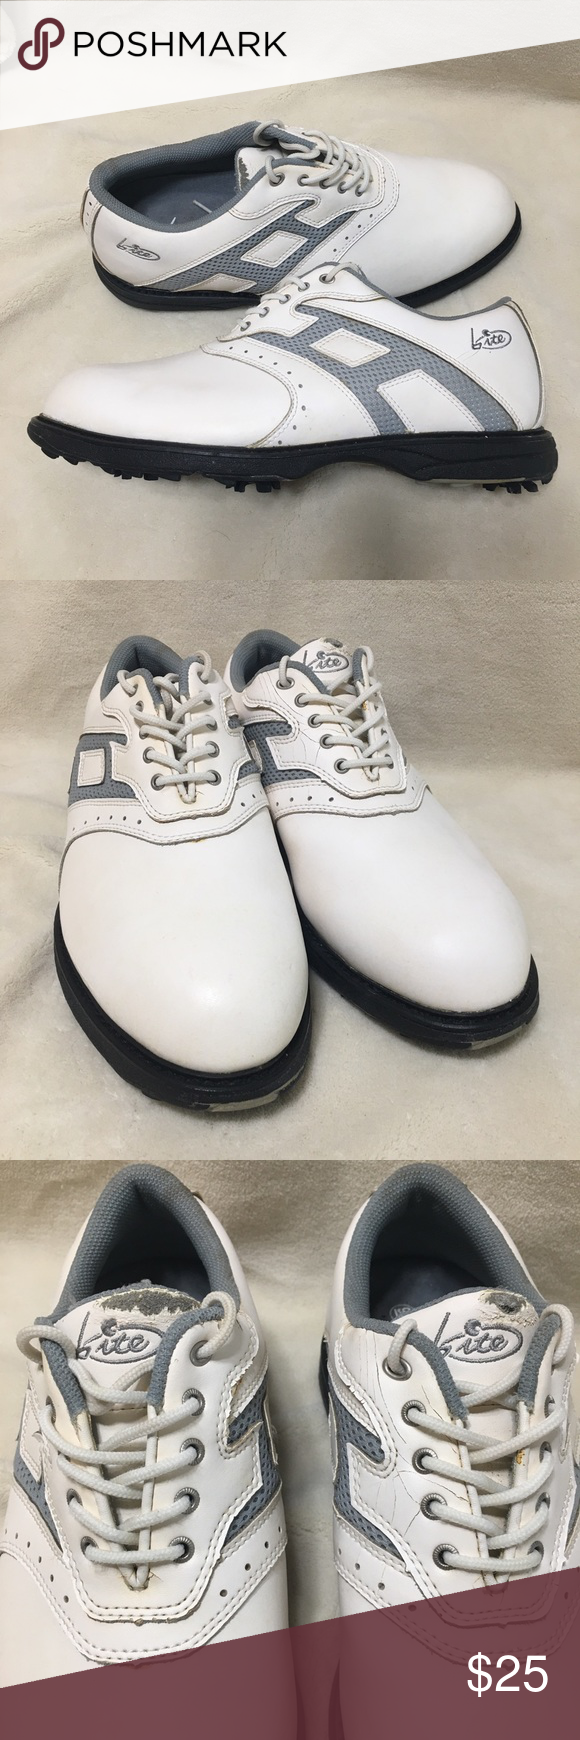 Bite Women's Golf Shoes Women's 9.5 Bite Golf Shoes. In